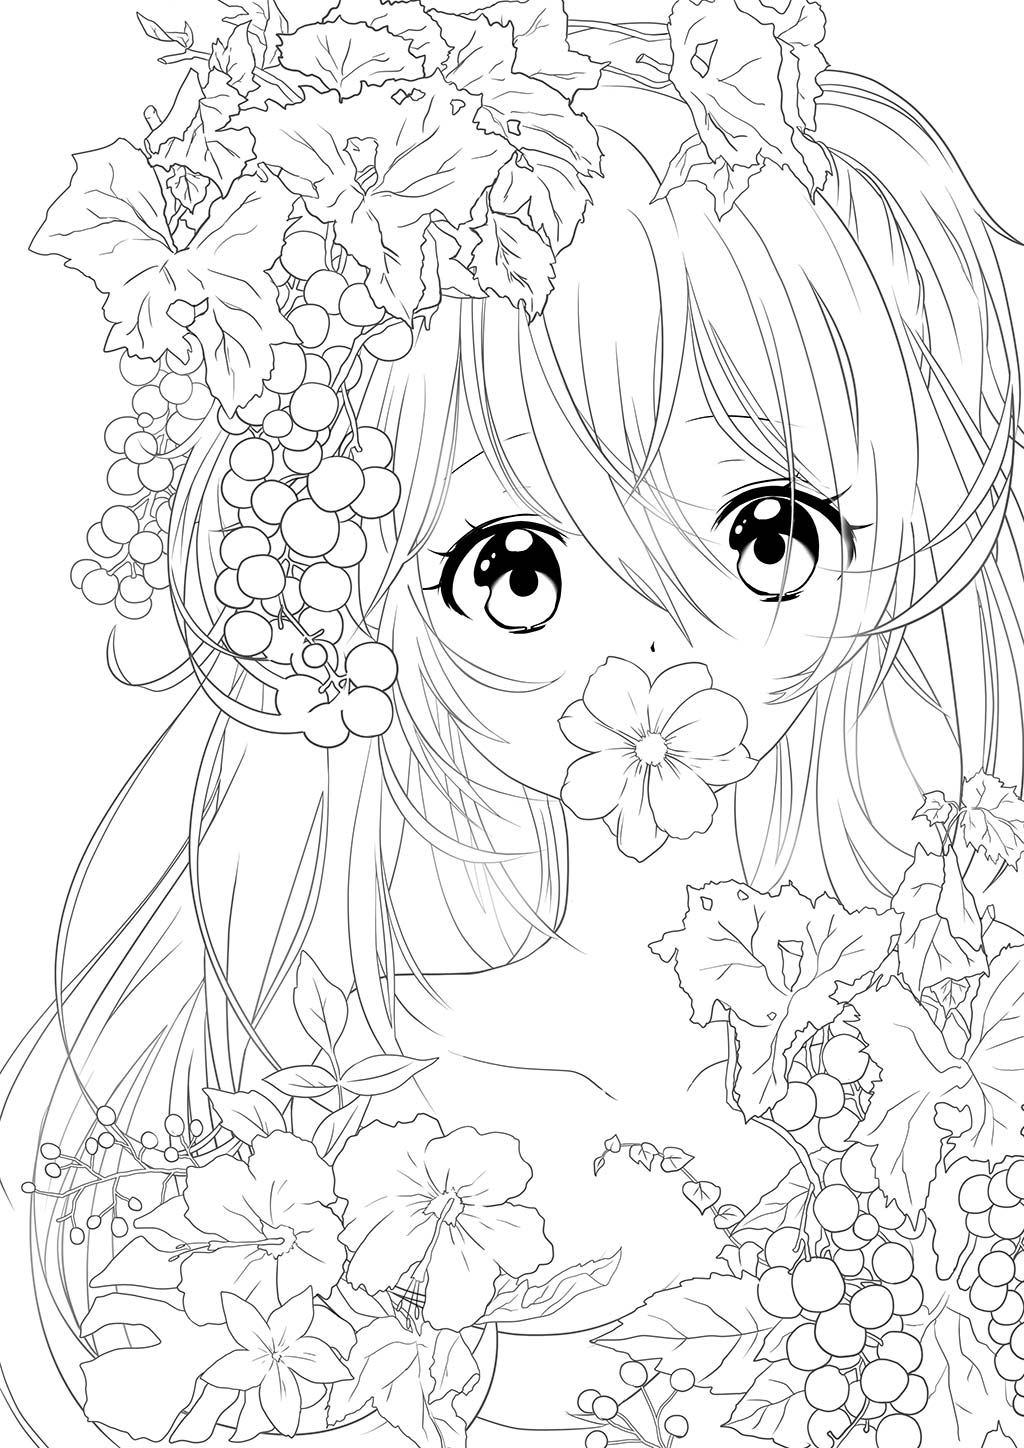 Manga studio ex 5 coloring pages ~ 塗り絵 線画 Pixiv - paintschainer